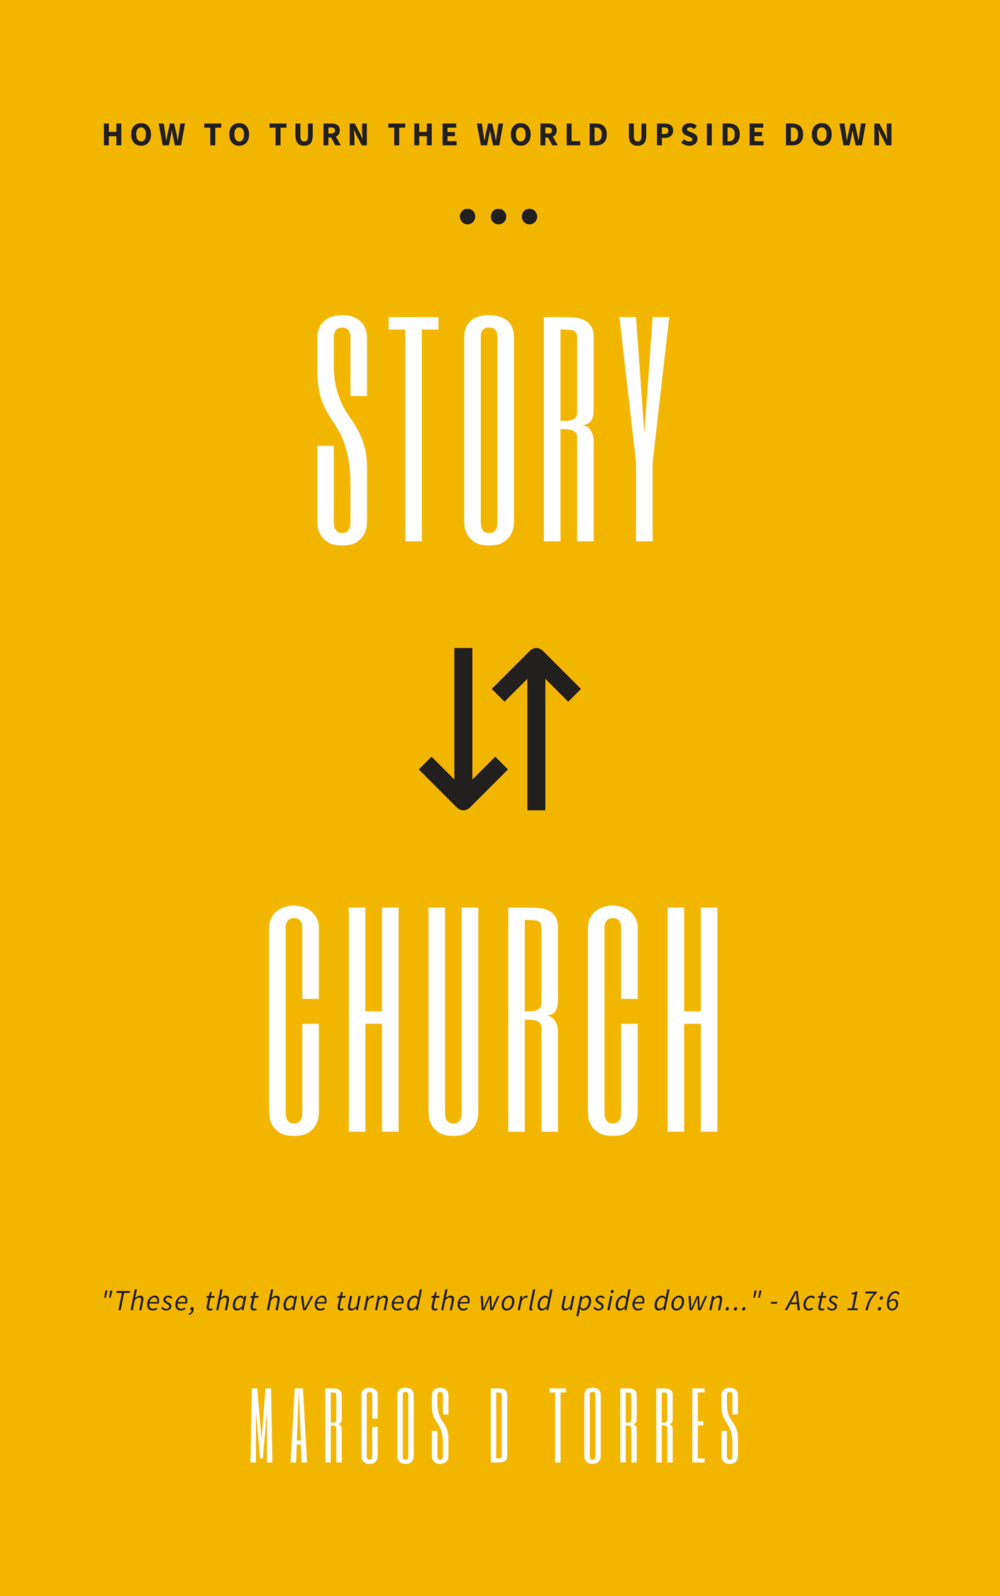 Coming Soon! - Story Church: How to Turn the World Upside DownOnce upon a time there was a church. It had little money, owned no real estate and it was constantly under attack. And yet, this church turned the world upside down. Today, our churches face similar struggles. Not enough money, outdated facilities and a post-modern, post-Christian society that sees no value in its presence. Do we shut our eyes and clench our fists for the bumpy ride all the while hoping it will get better somehow? Or is there a way for us to once again, despite all that is mounted against us, turn the world upside down?In this book, Australian local church pastor Marcos Torres unpacks a simple process that promises to take even the most rundown and limited church from a dying state to the world changing movement it is intended to be.COMING SOON